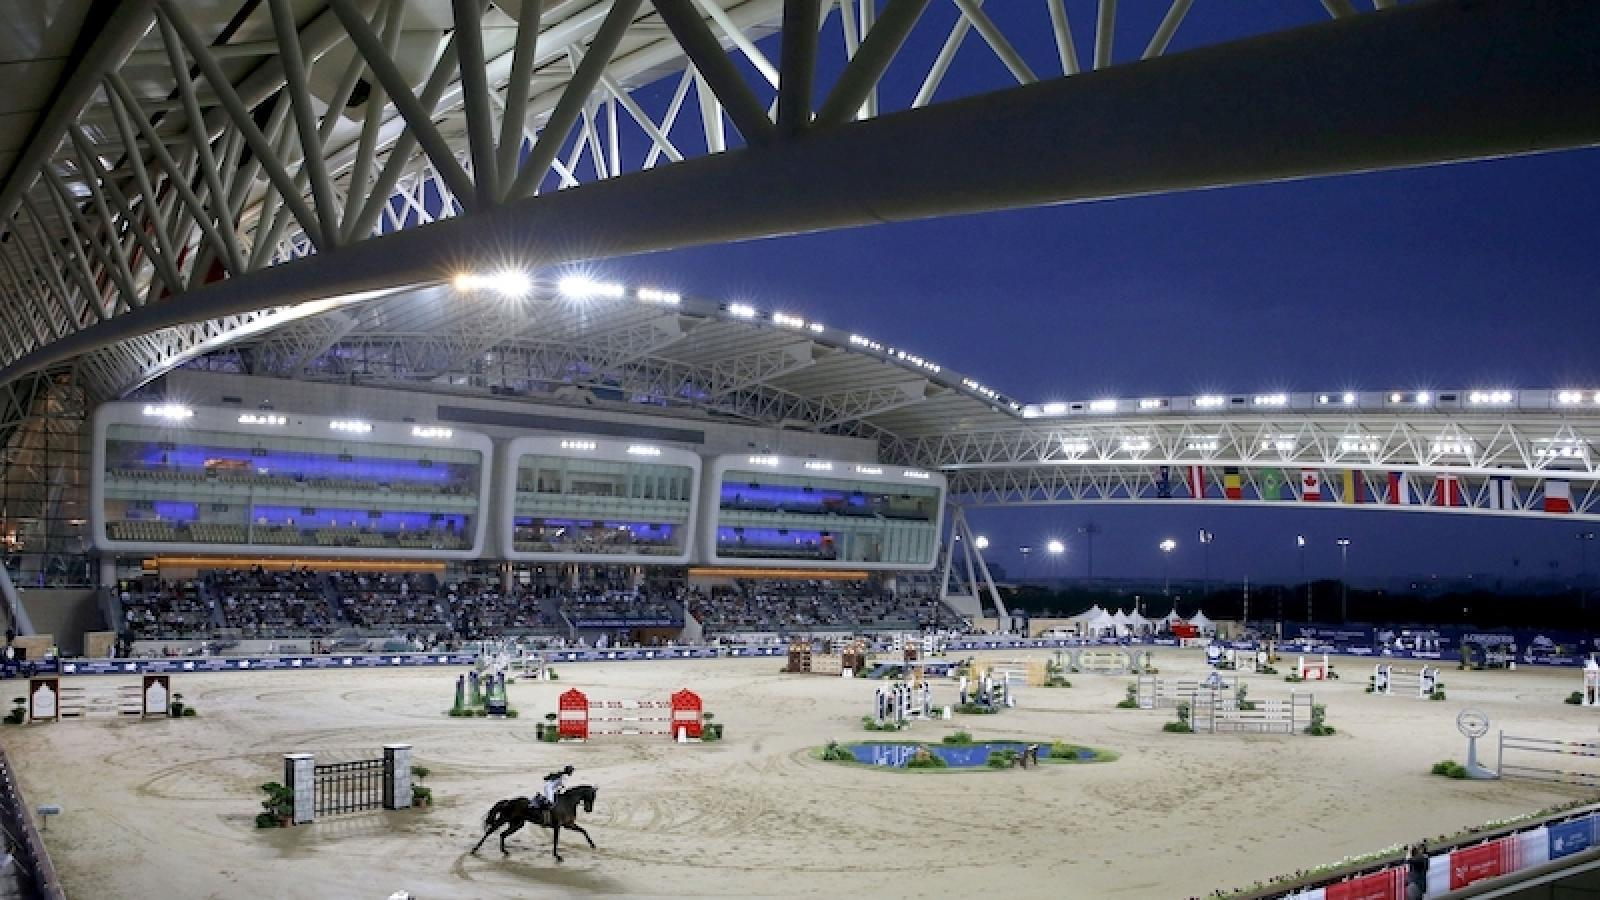 Season-opening Longines Global Champions Tour to kick off at Longines Arena at Al Shaqab today